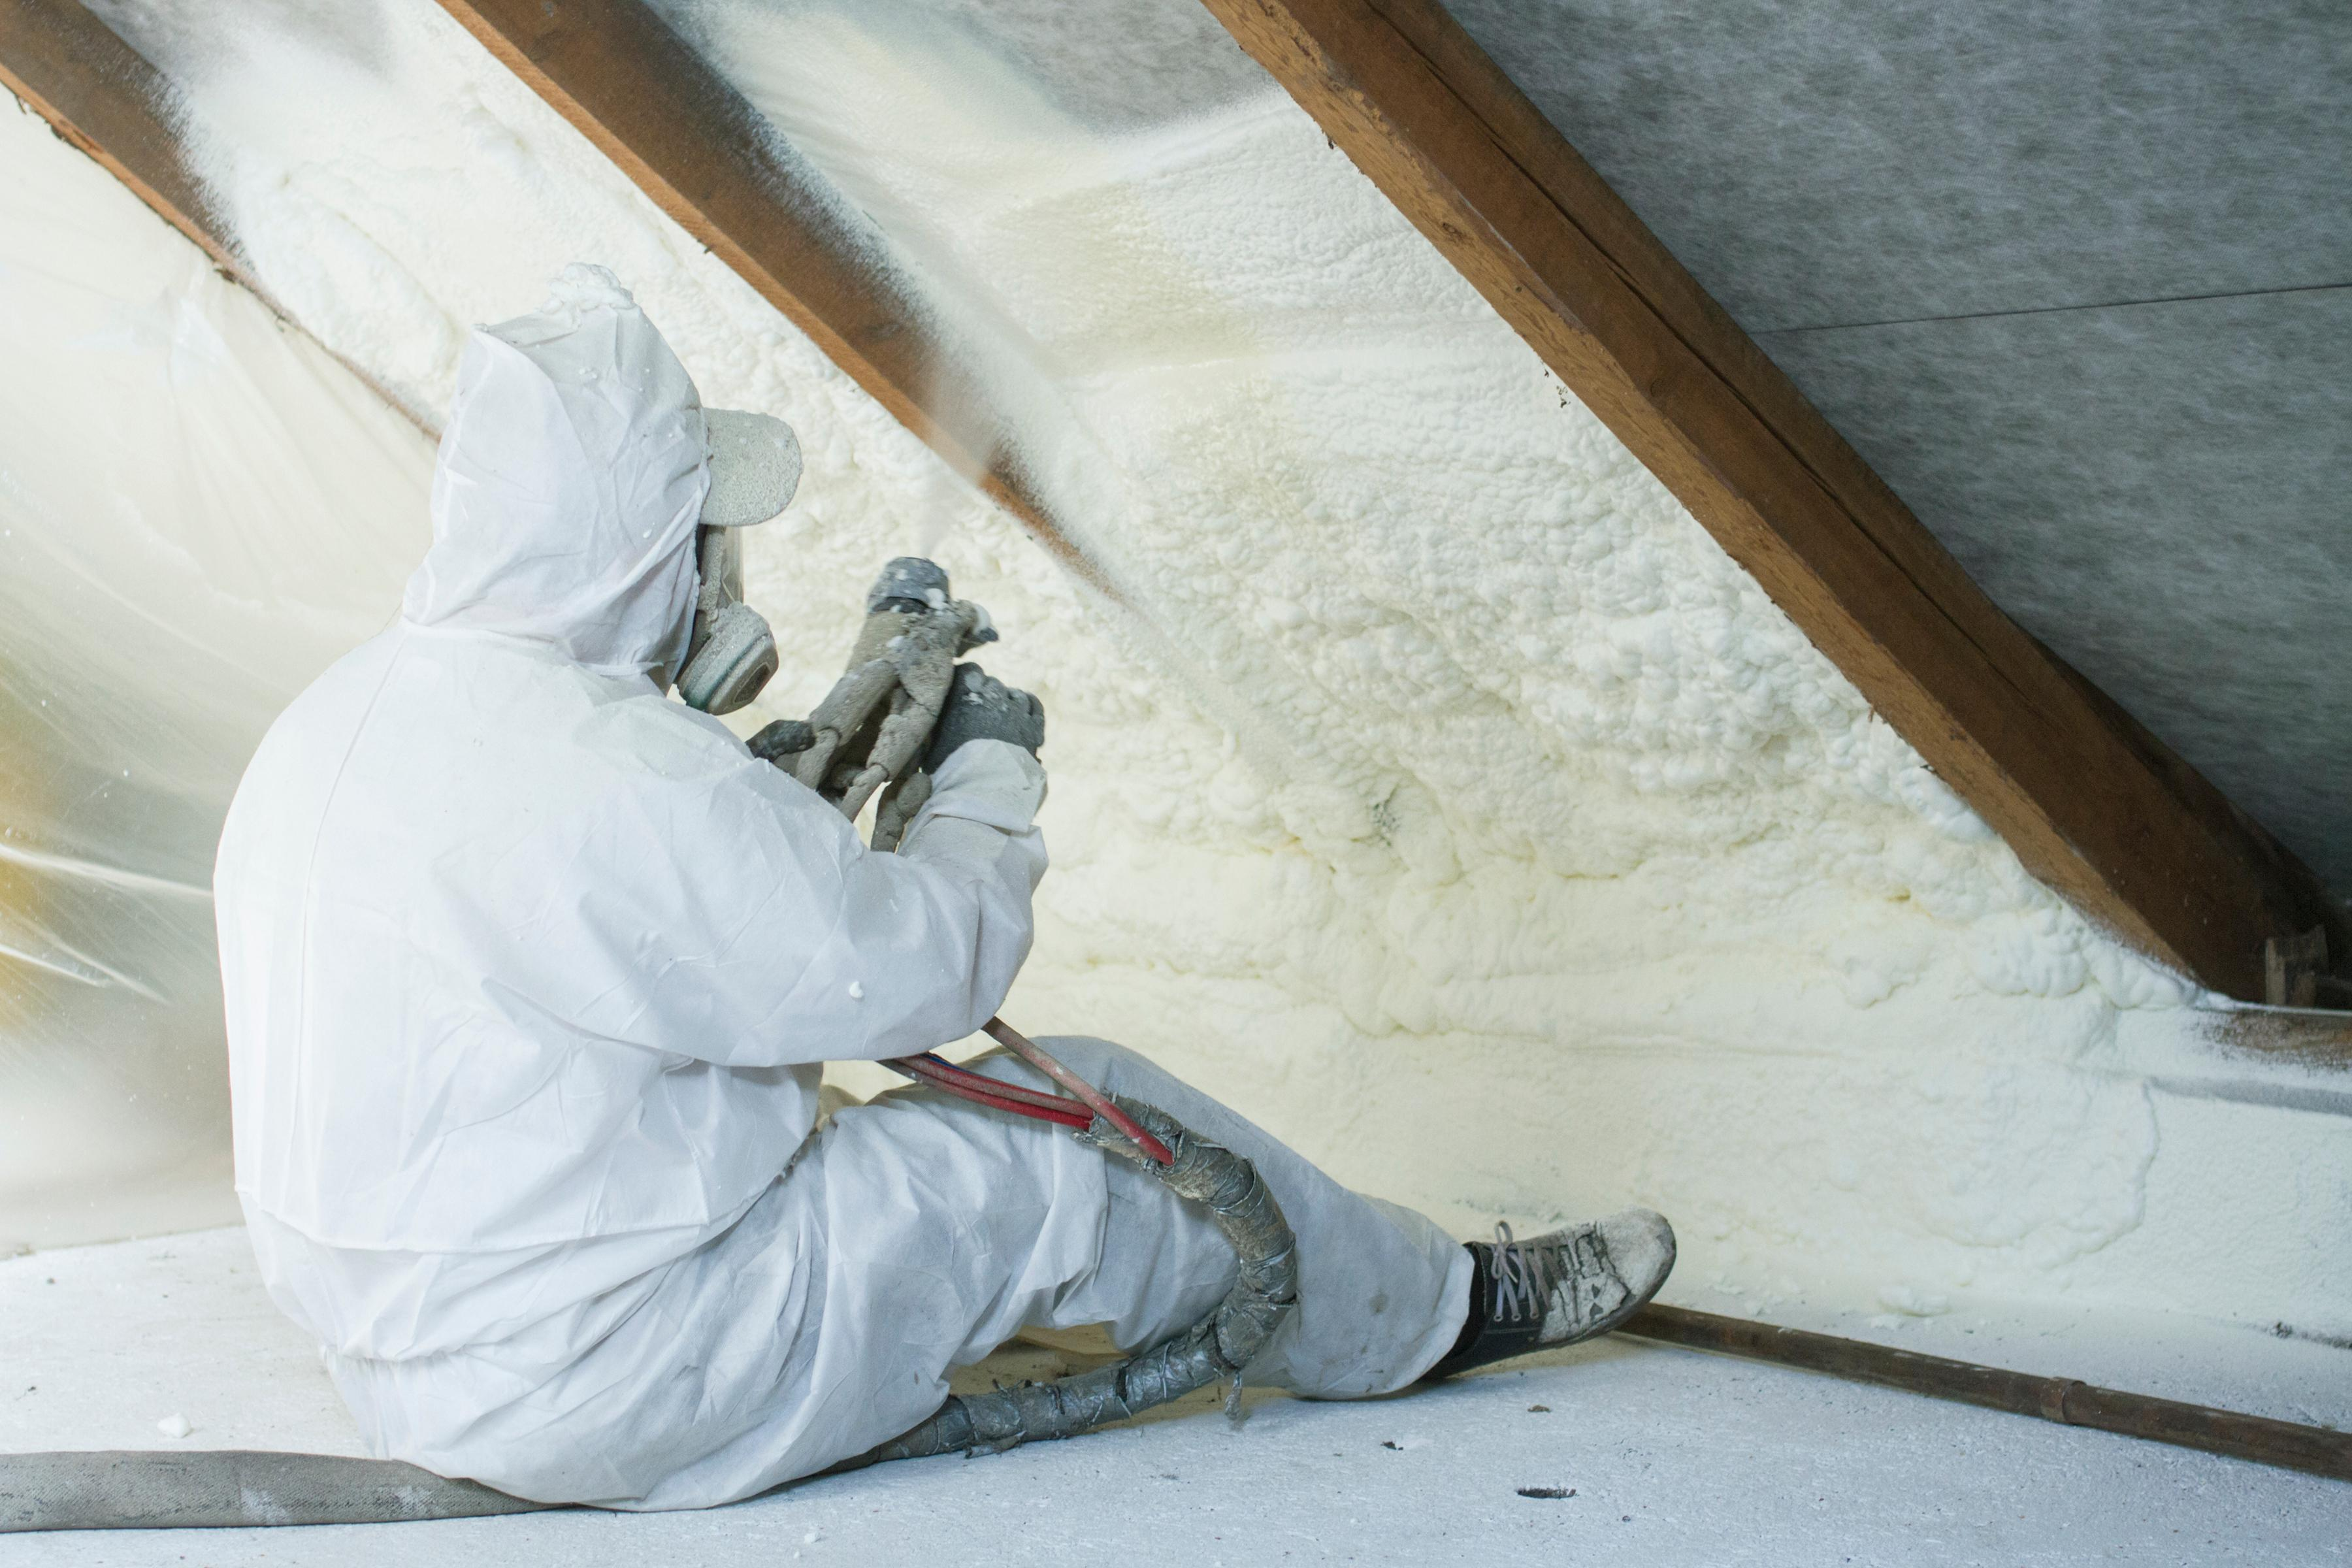 Spray Foam Insulation, Green Team Long Island, New York